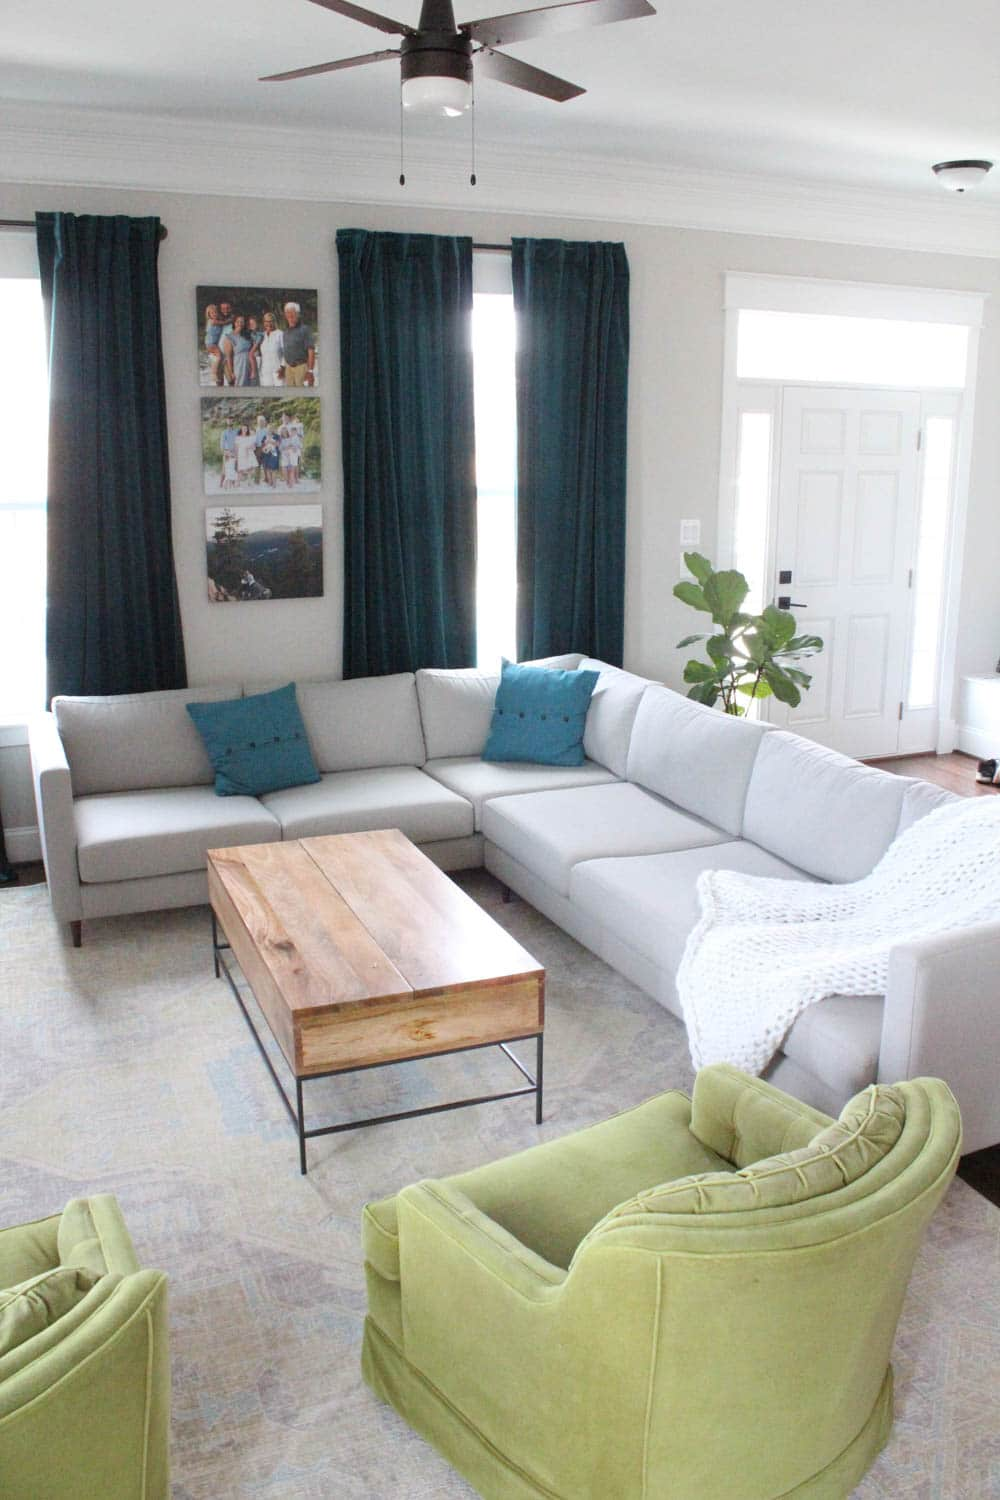 Medley Furniture Review + Discount Code